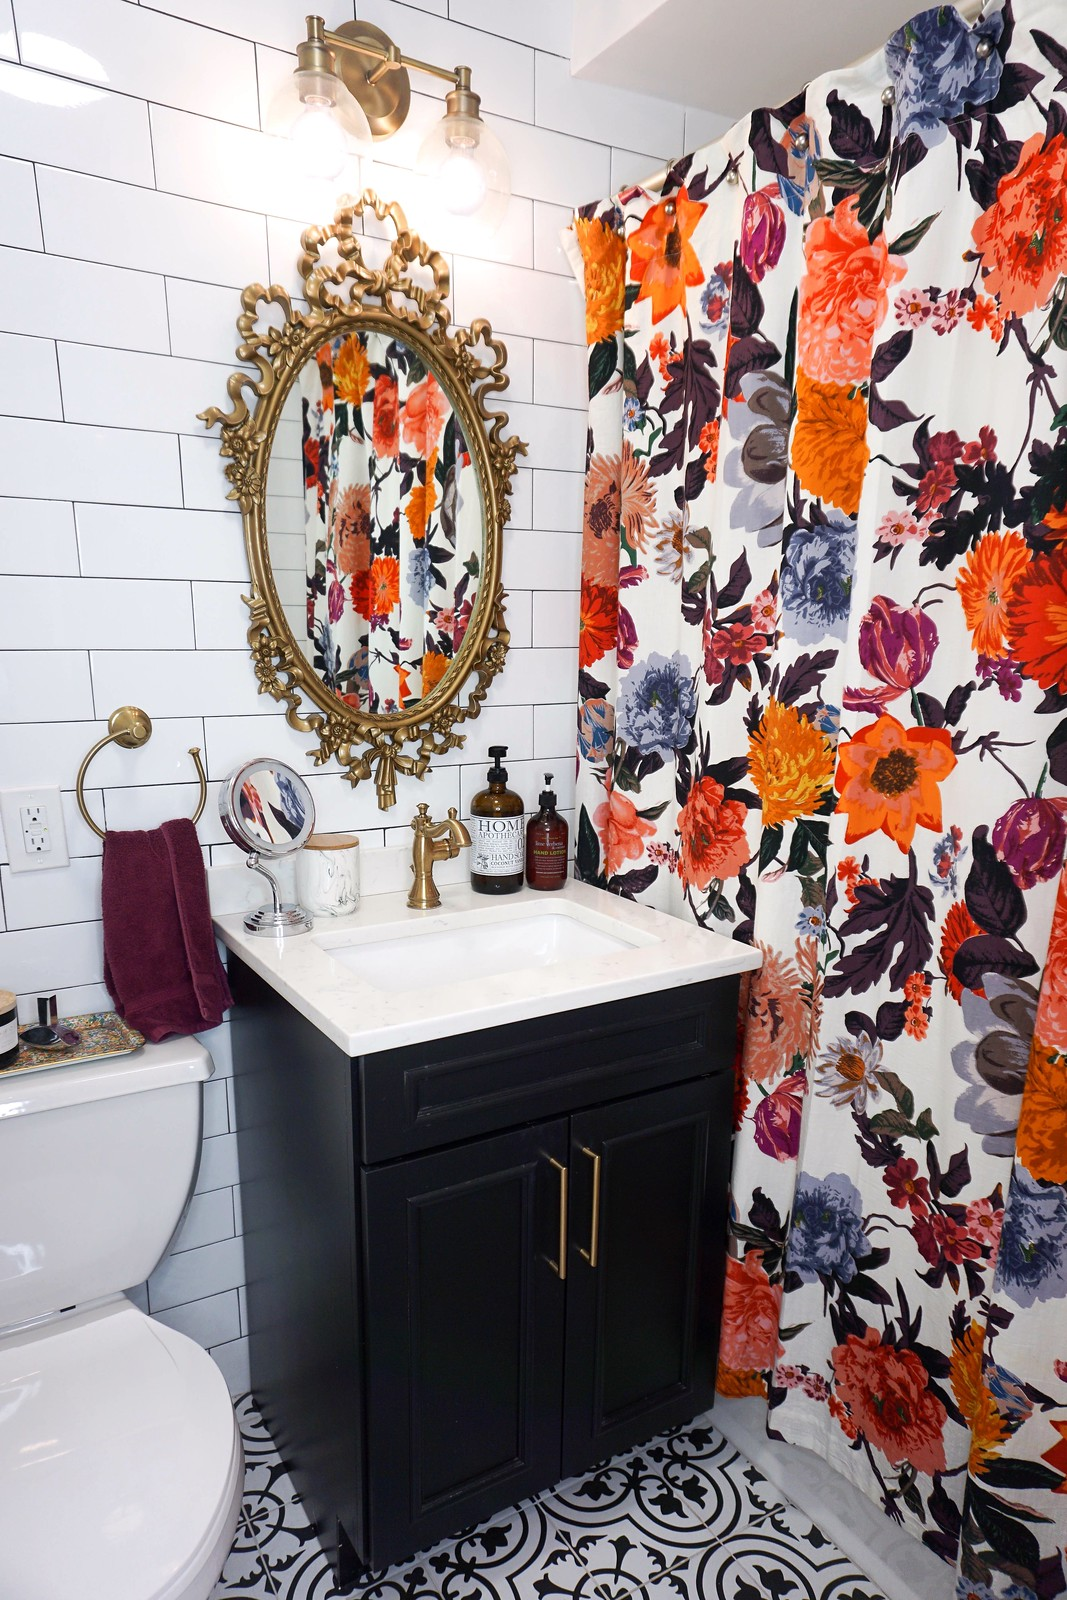 750 square foot New York Apartment After Photos | Colorful Vintage Inspired Tiny Bathroom | Eclectic Modern Decorating Style Home Decor Inspiration